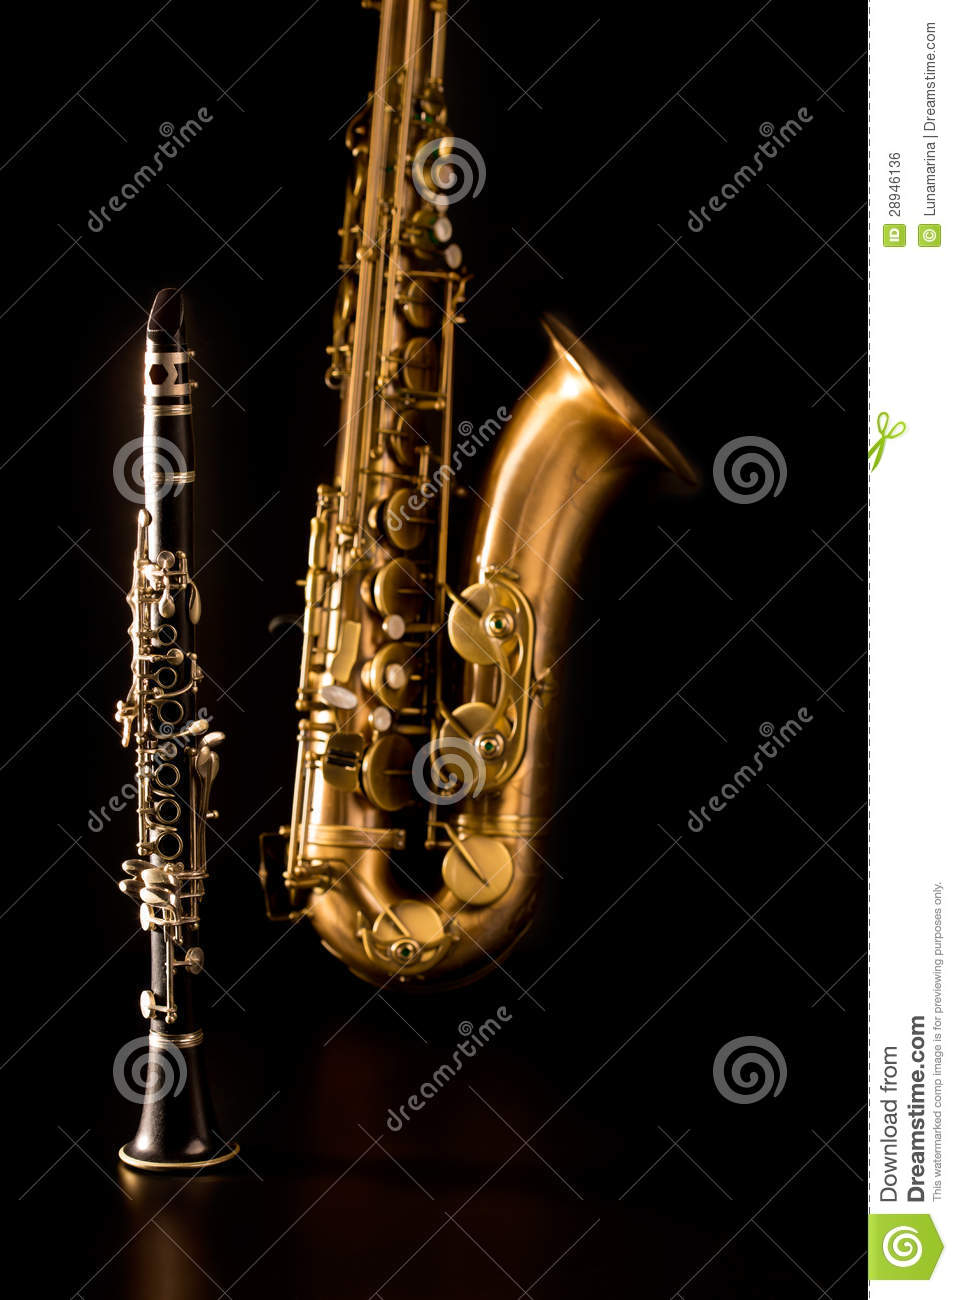 Classic Music Sax Tenor Saxophone And Clarinet In Black Royalty Free Stock Image ...